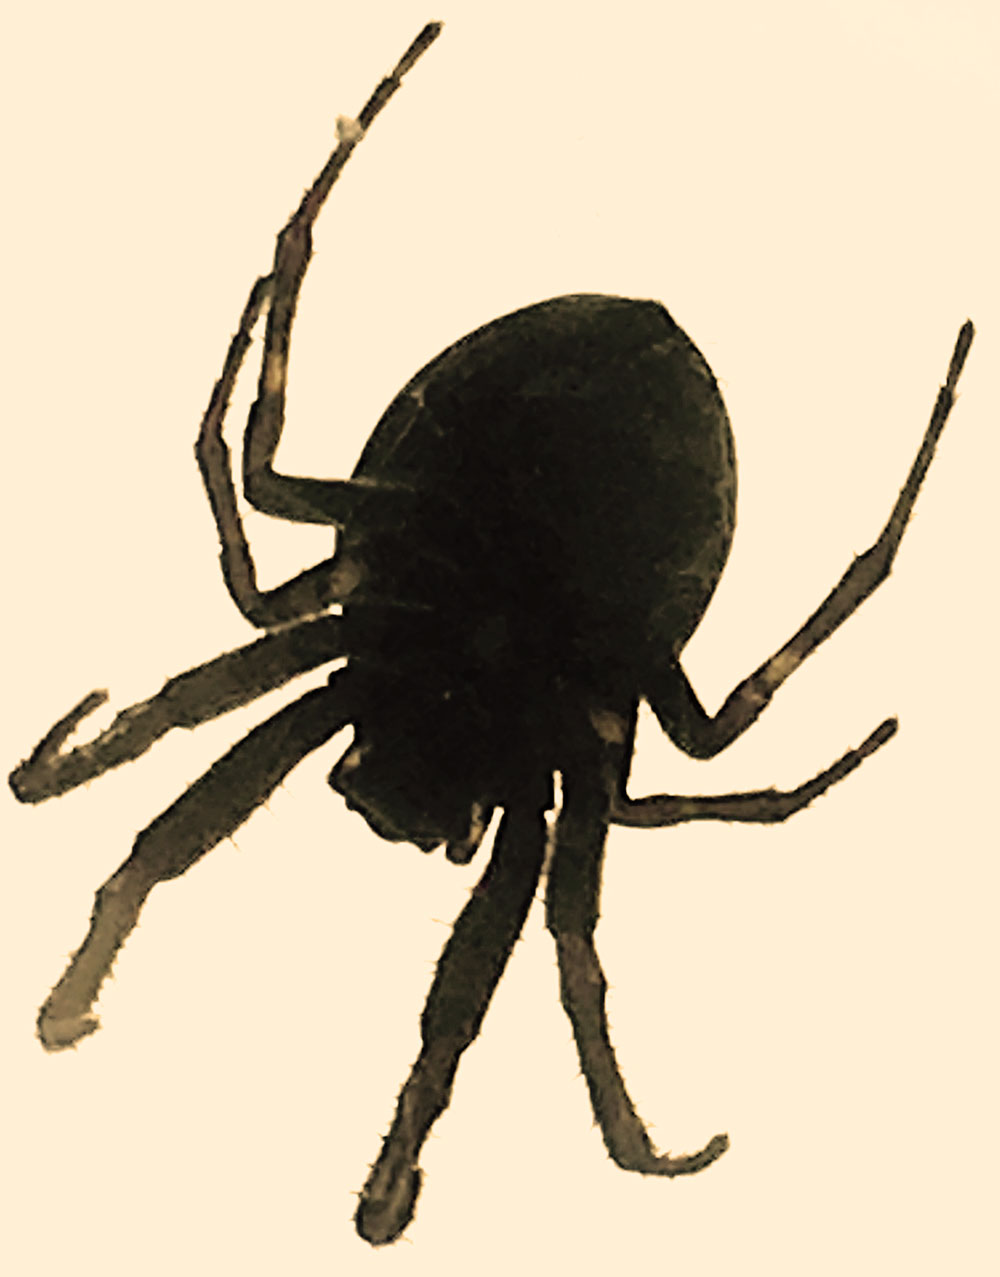 Silhouette photo of the scary-looking but harmless bridge spider.